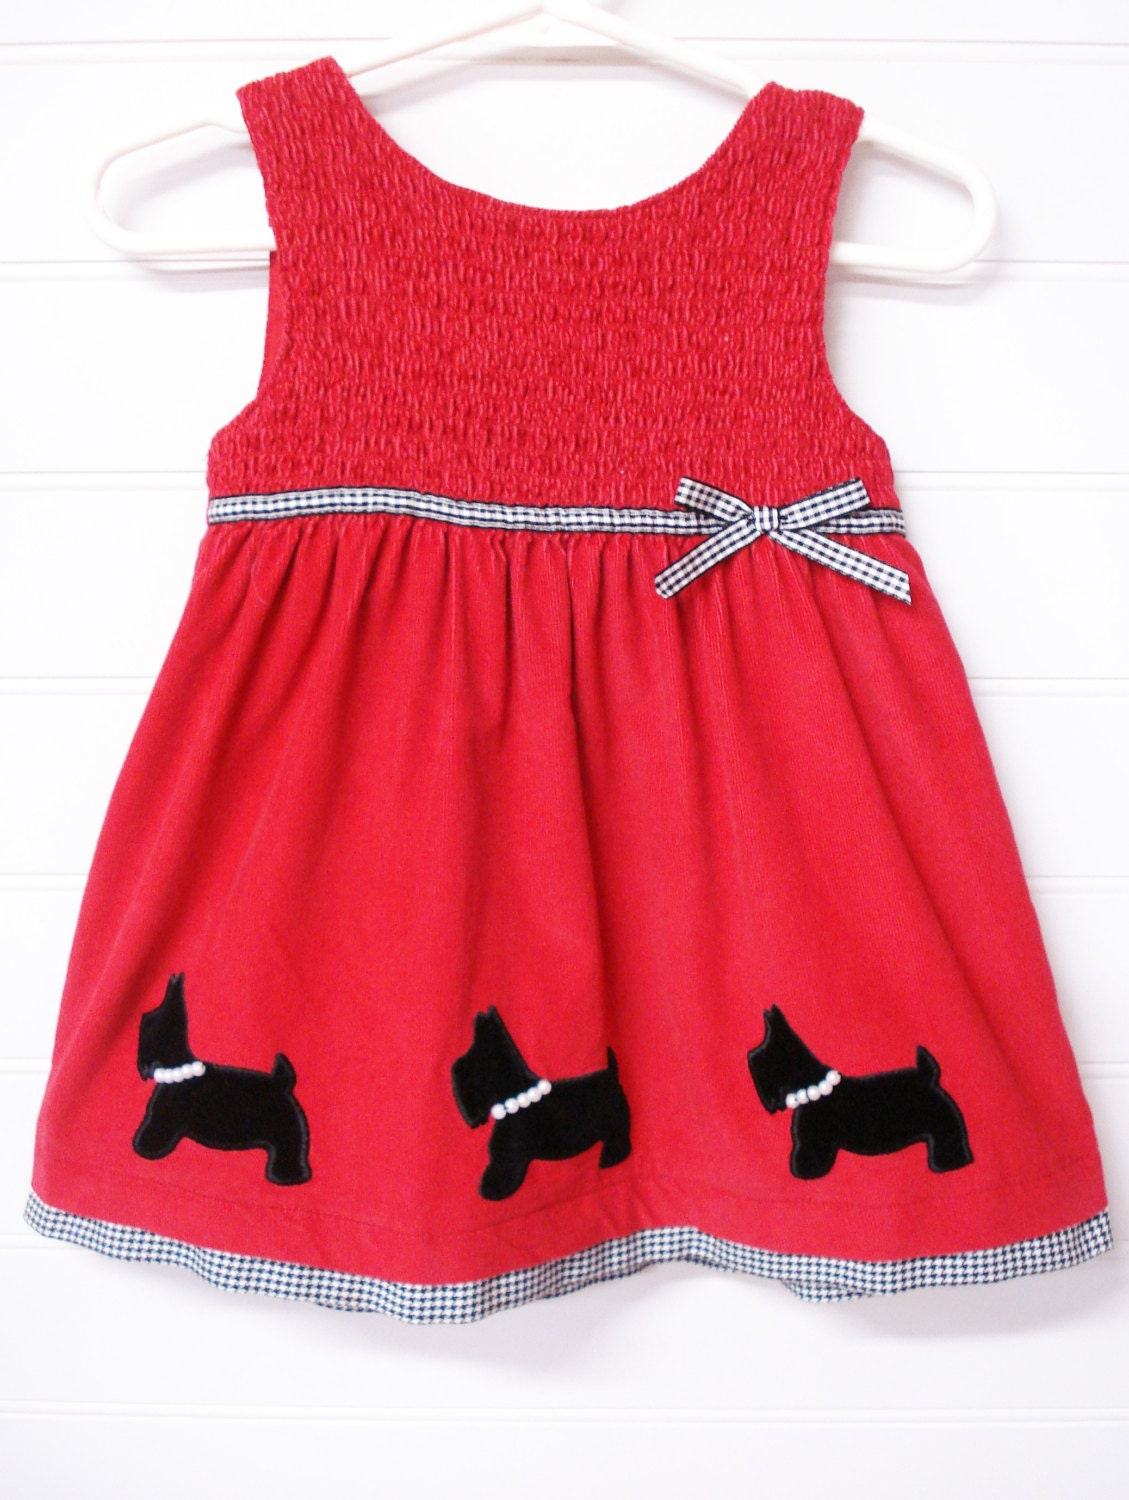 vintage baby clothes toddler dress corduroy